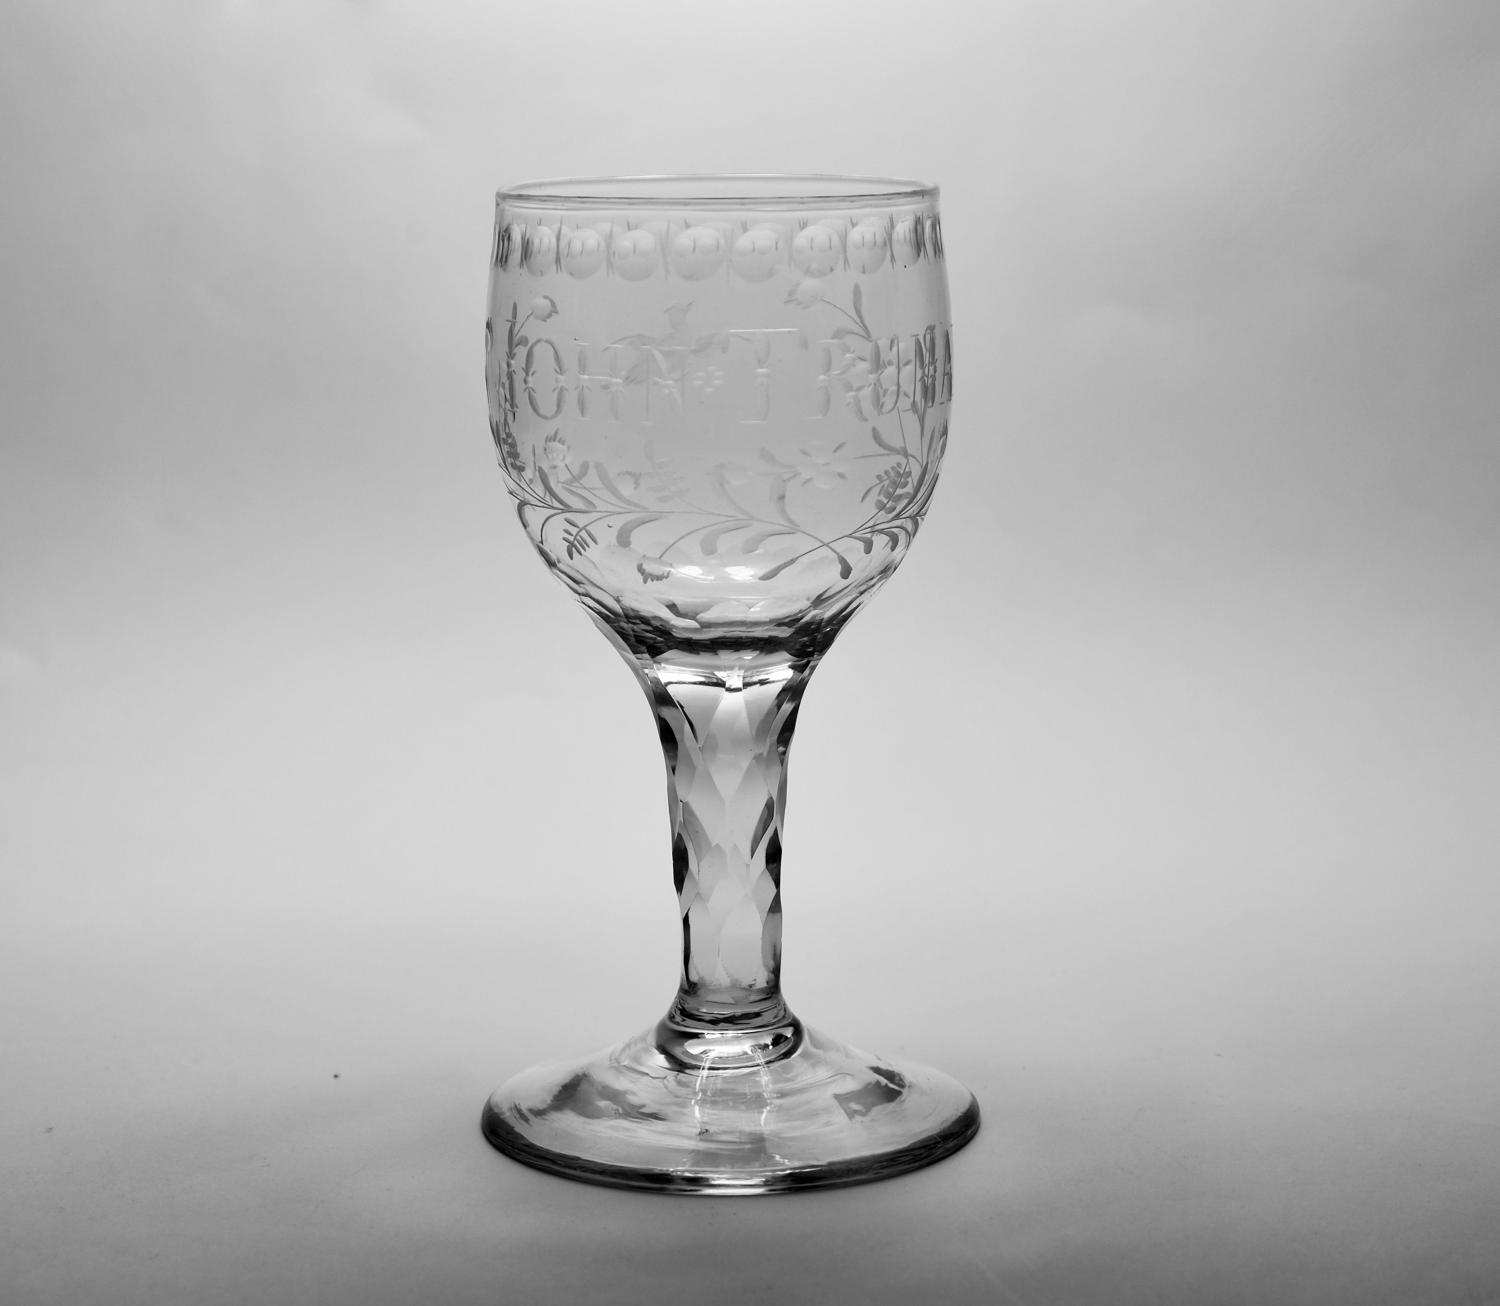 Facet stem wine glass C1780